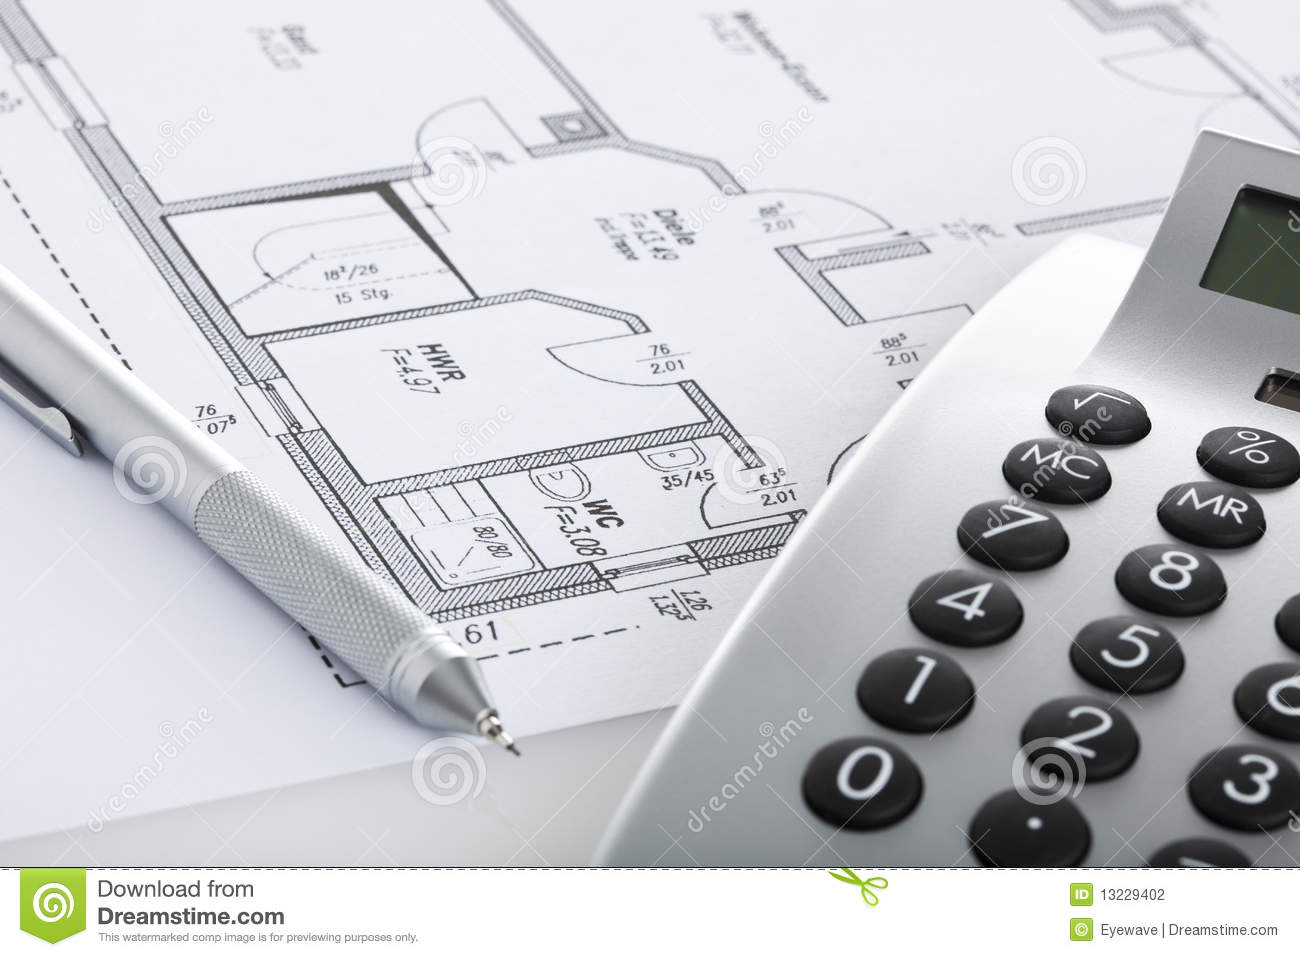 Pencil and calculator on blueprint of floor plan stock for Floor plan cost estimator